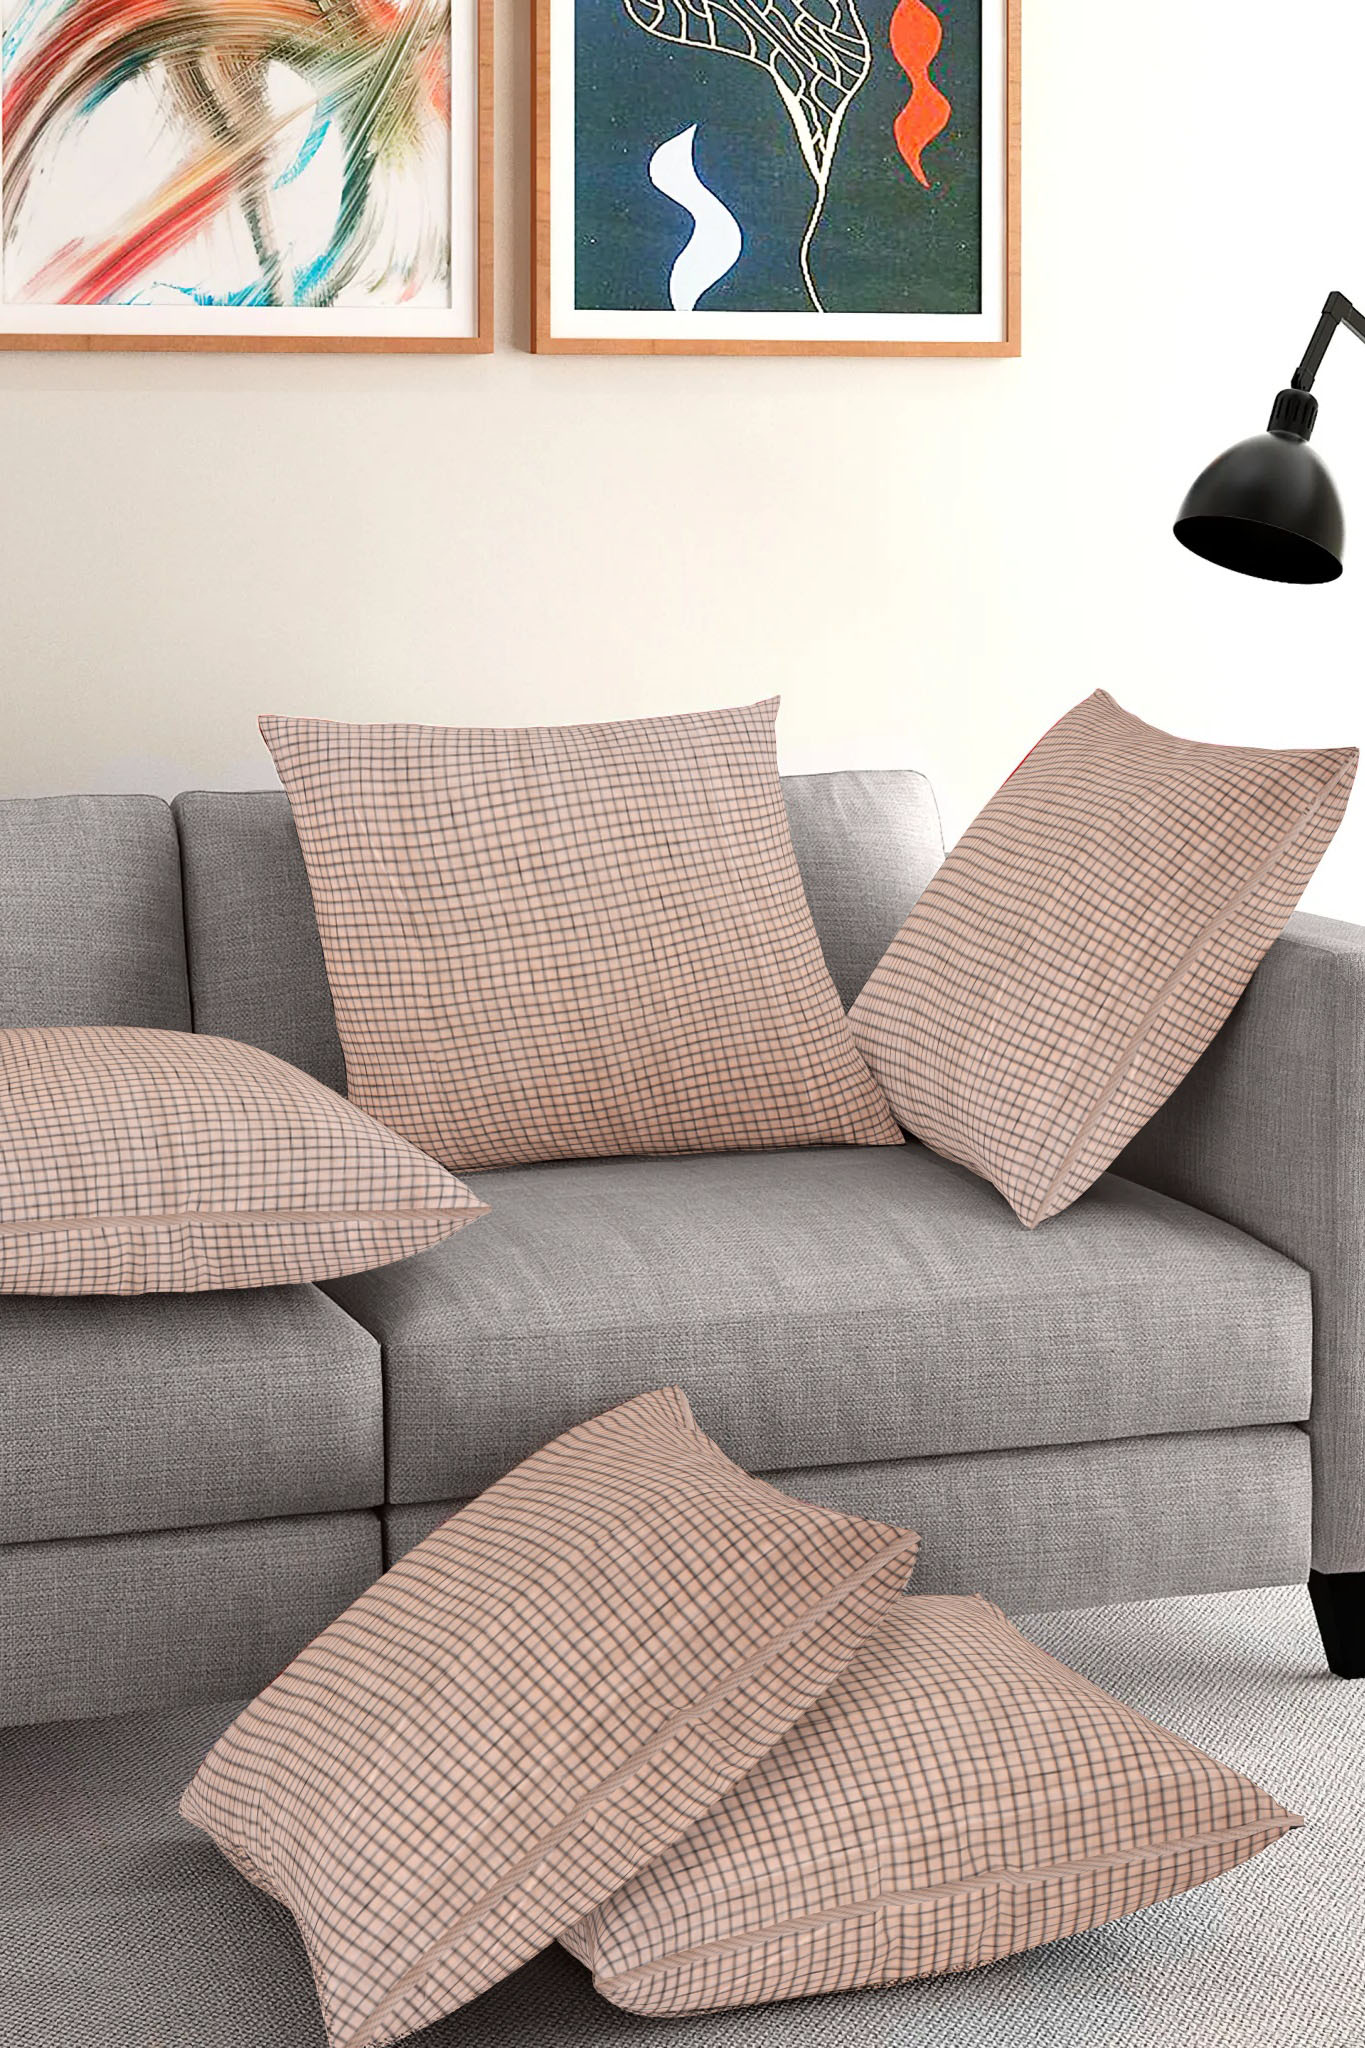 Set of 5-Beige Black Cotton Cushion Cover-35415-16x16 Inches